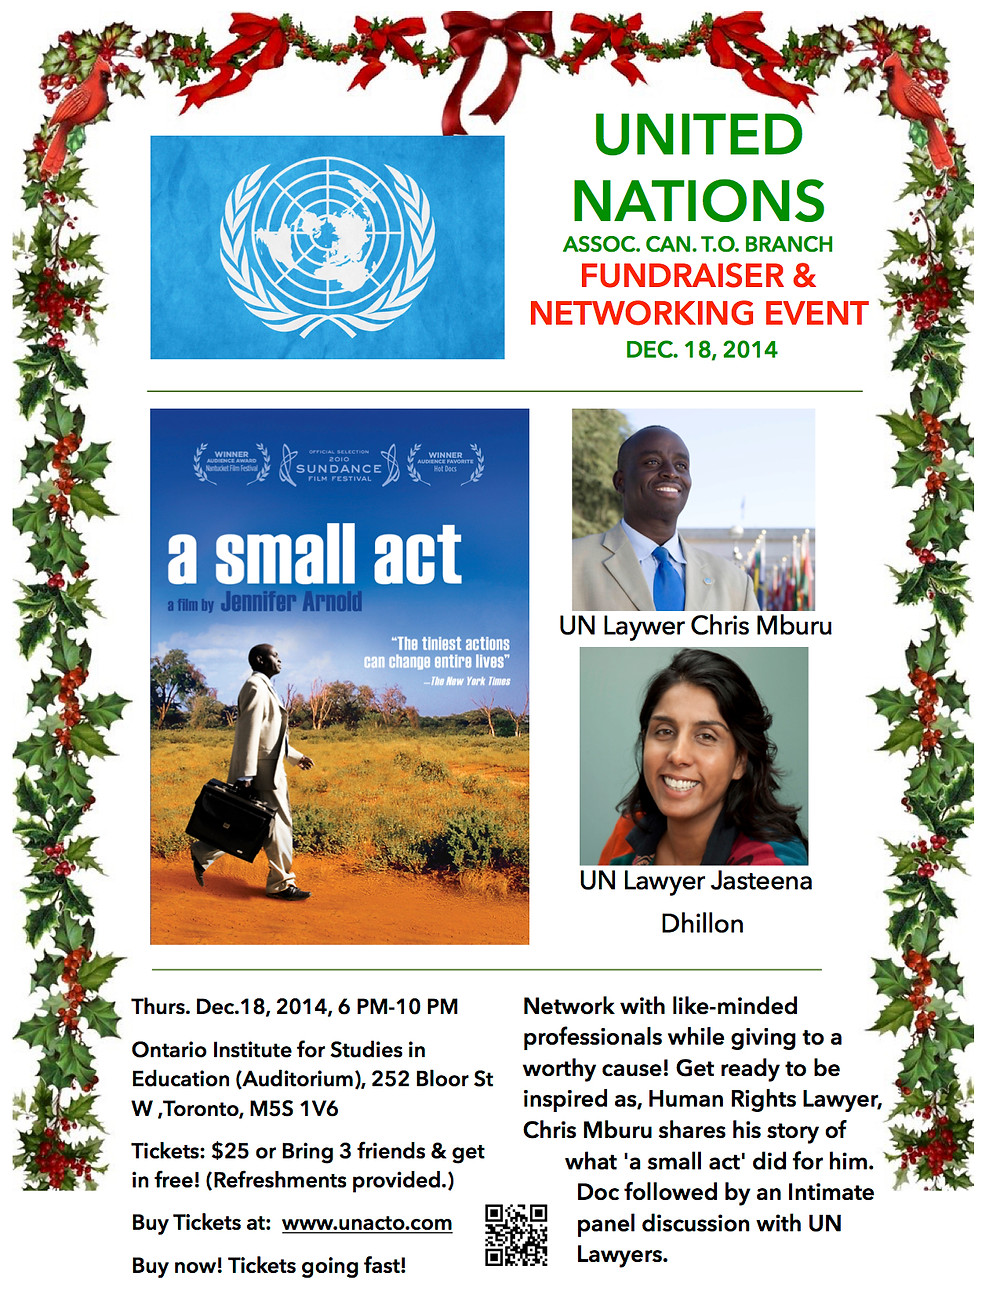 a small act poster dec 18, 2014.jpg